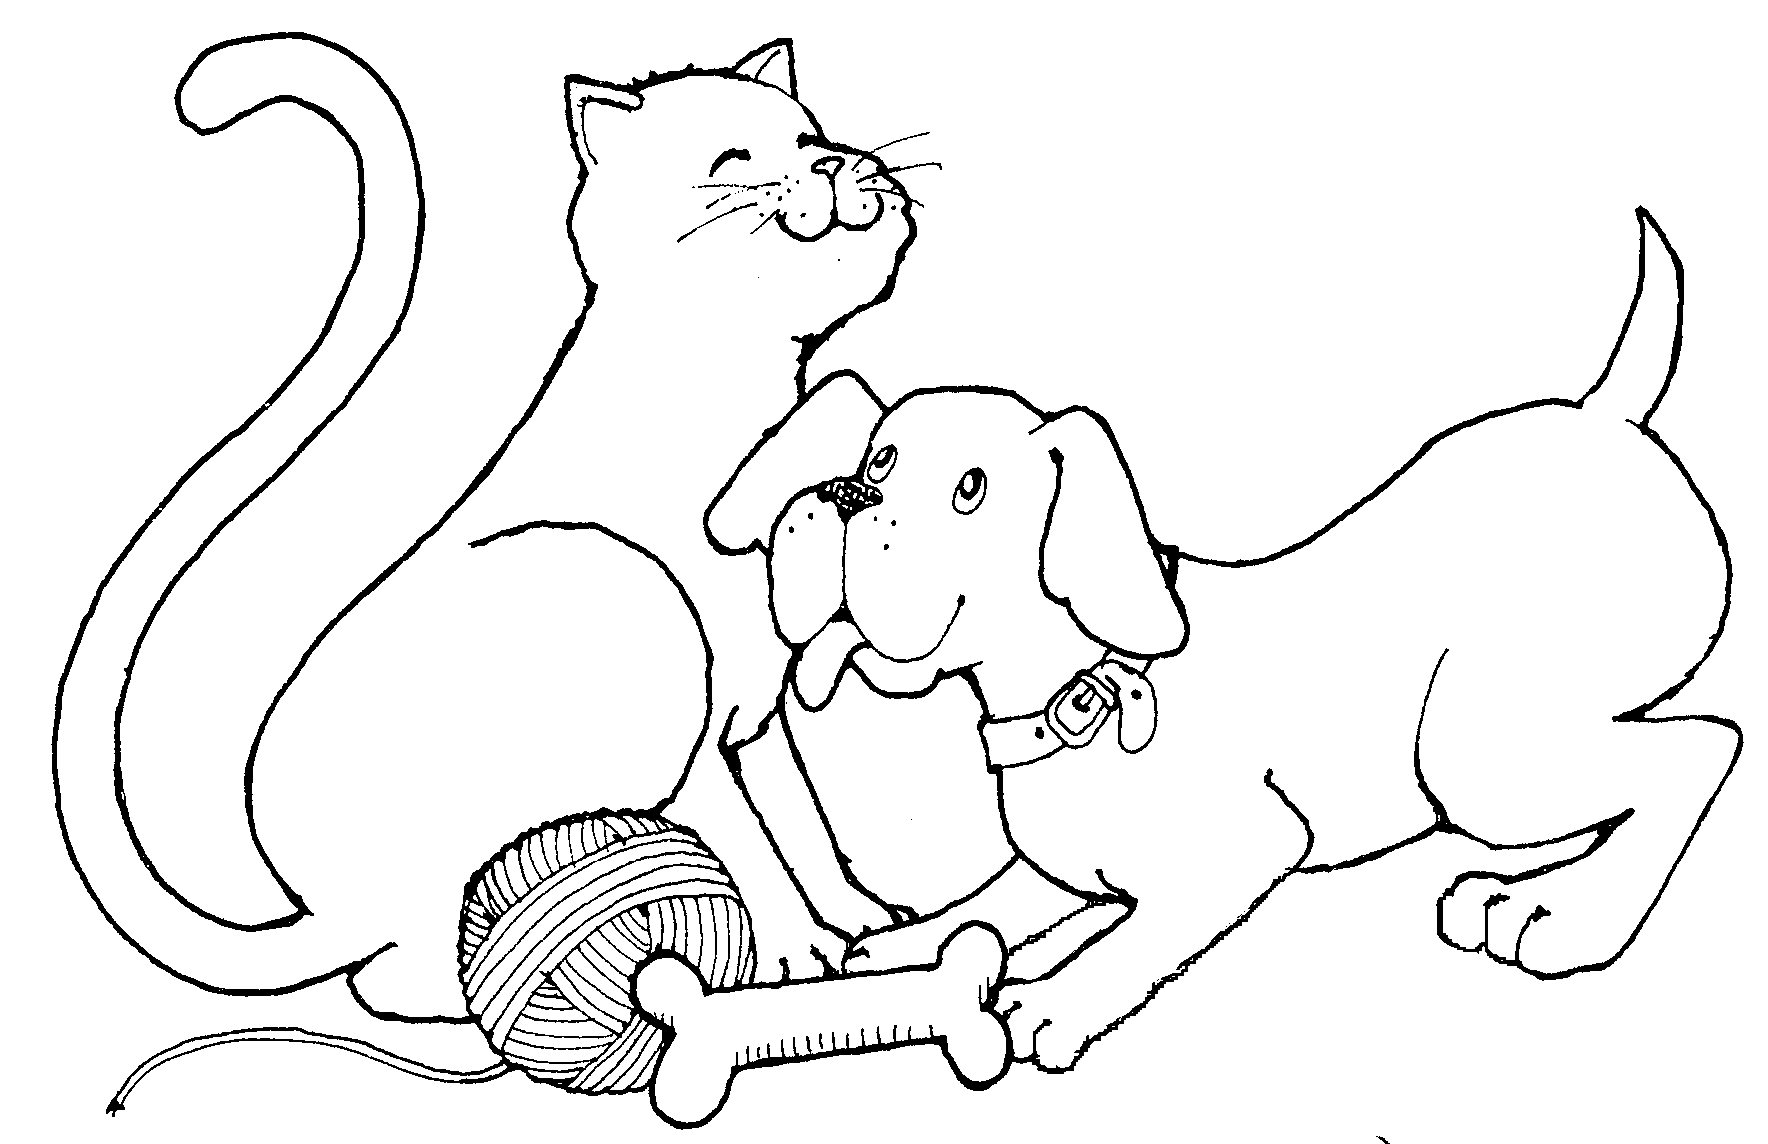 Black Cat clipart dog black Dogs Cat Cliparts collection Cliparts